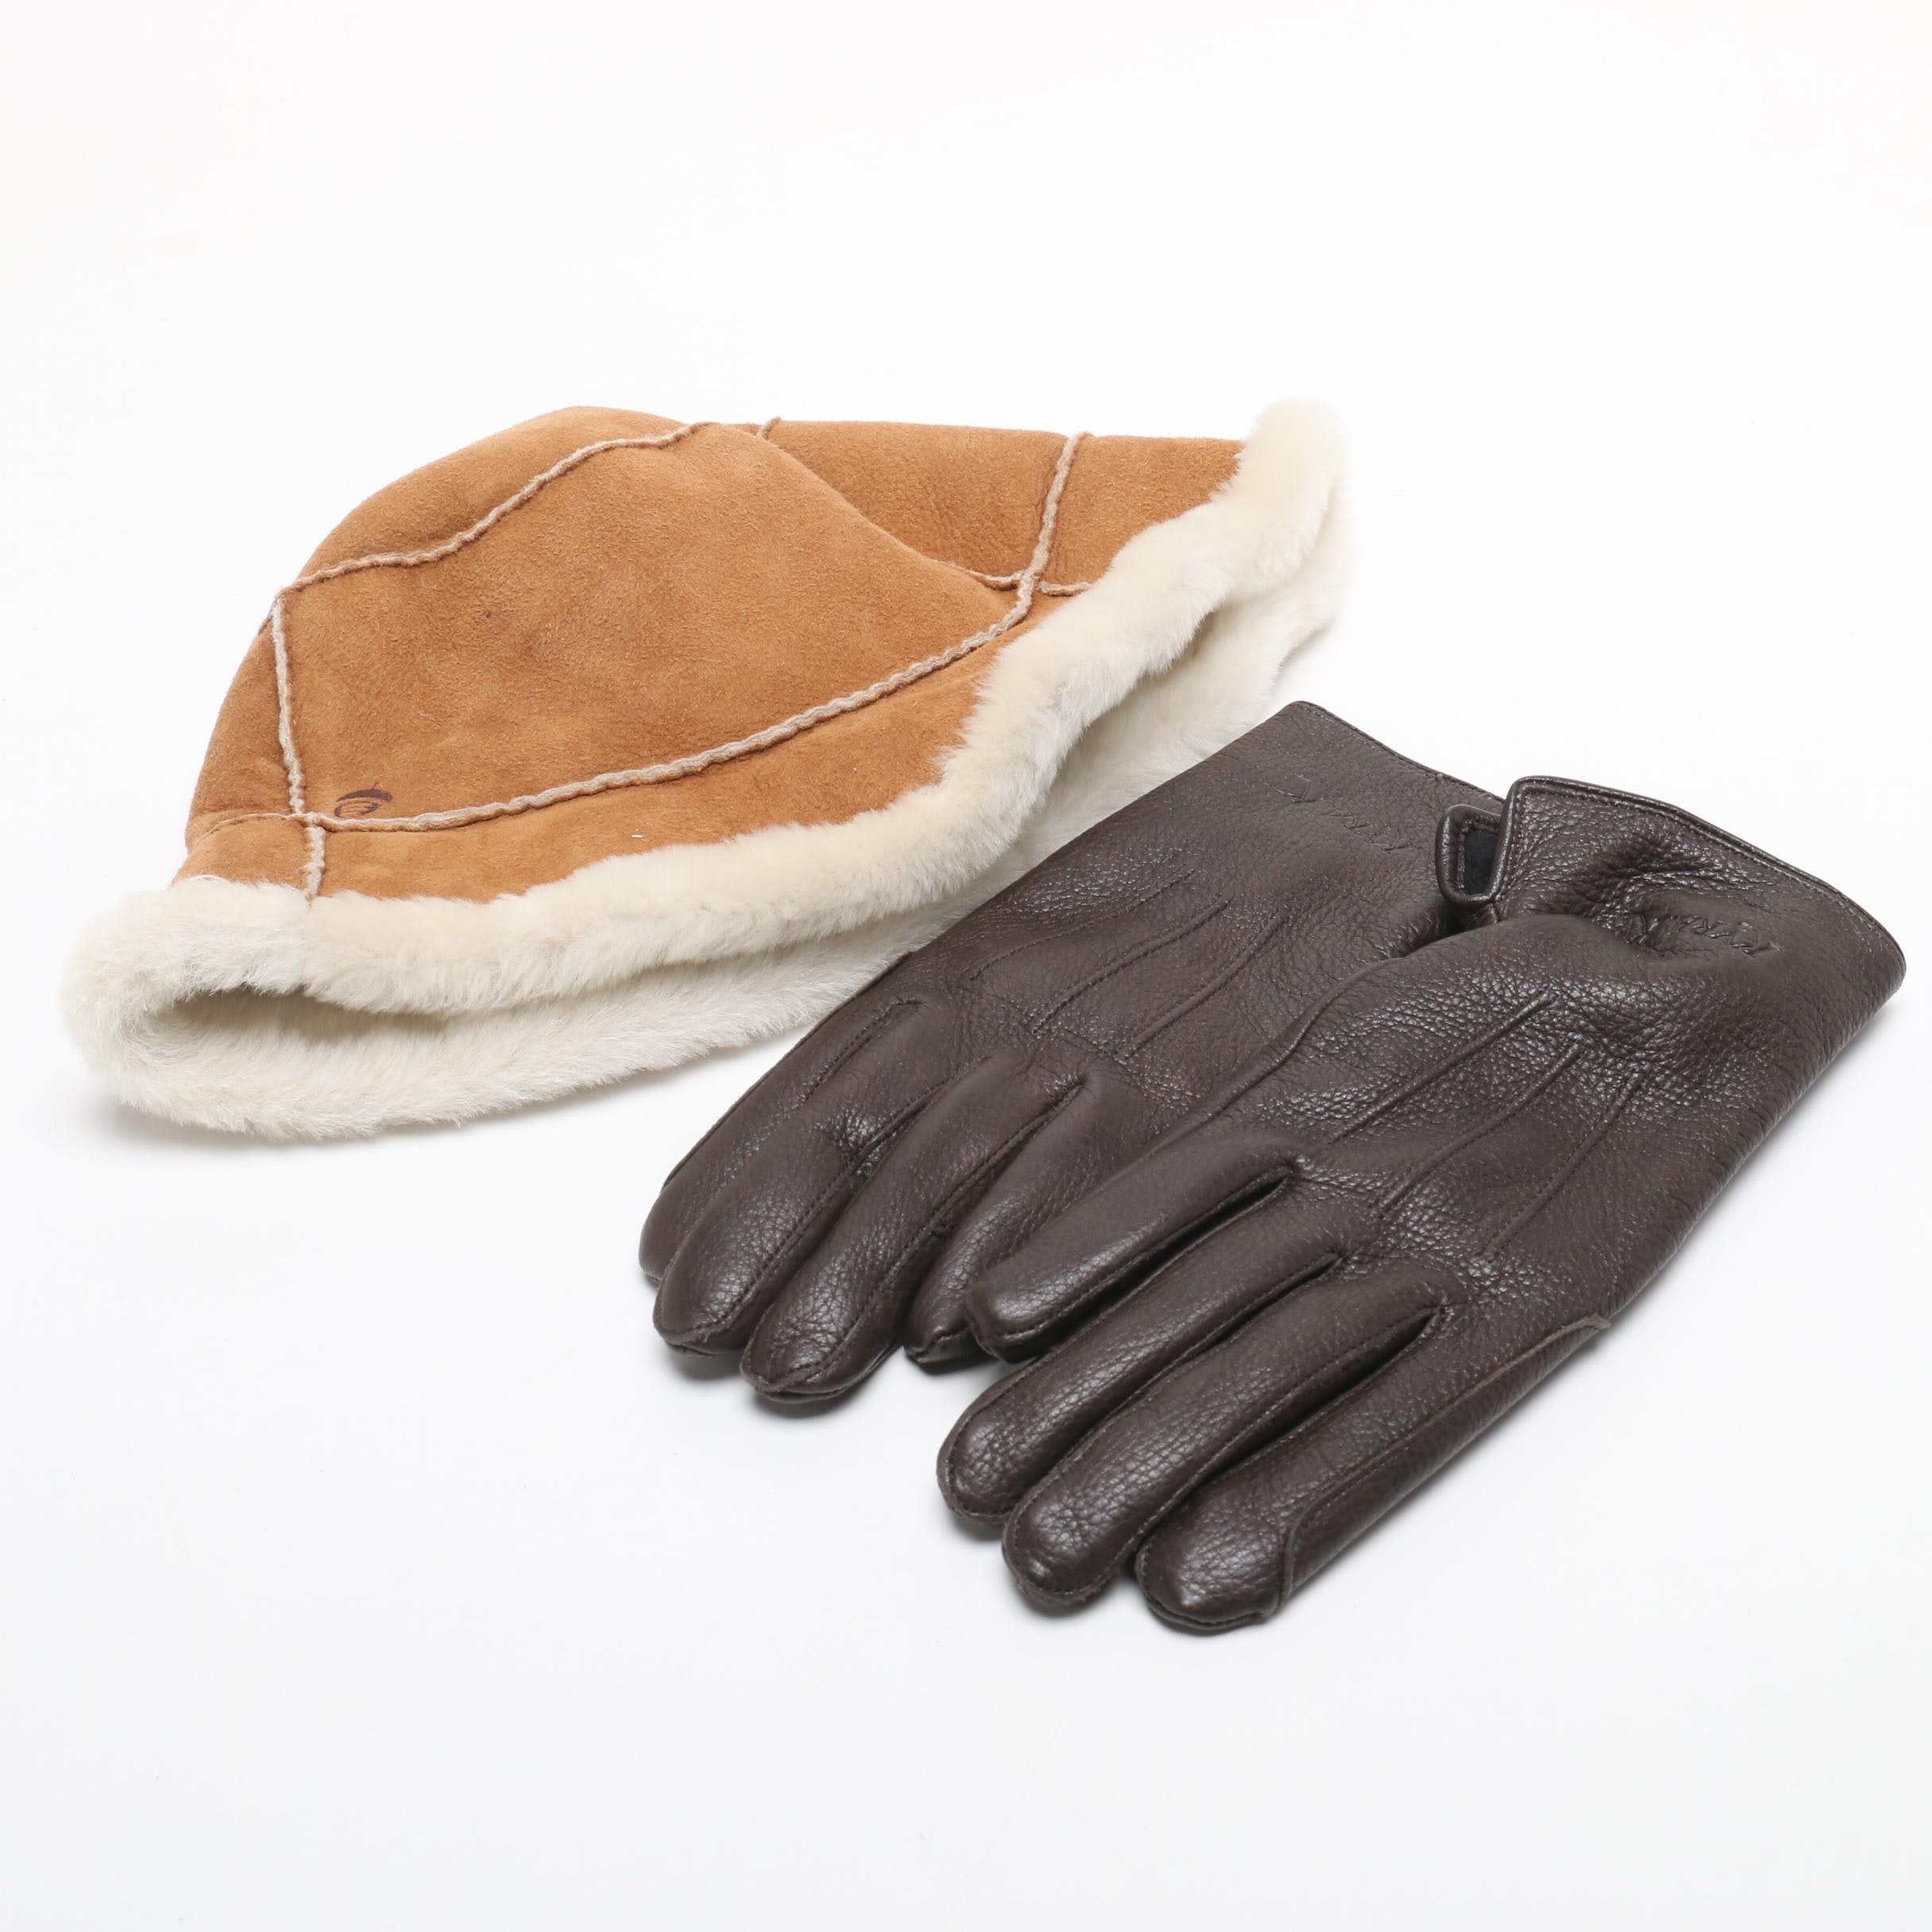 Women's Kyra. K Brown Leather Gloves and Shearling Hat